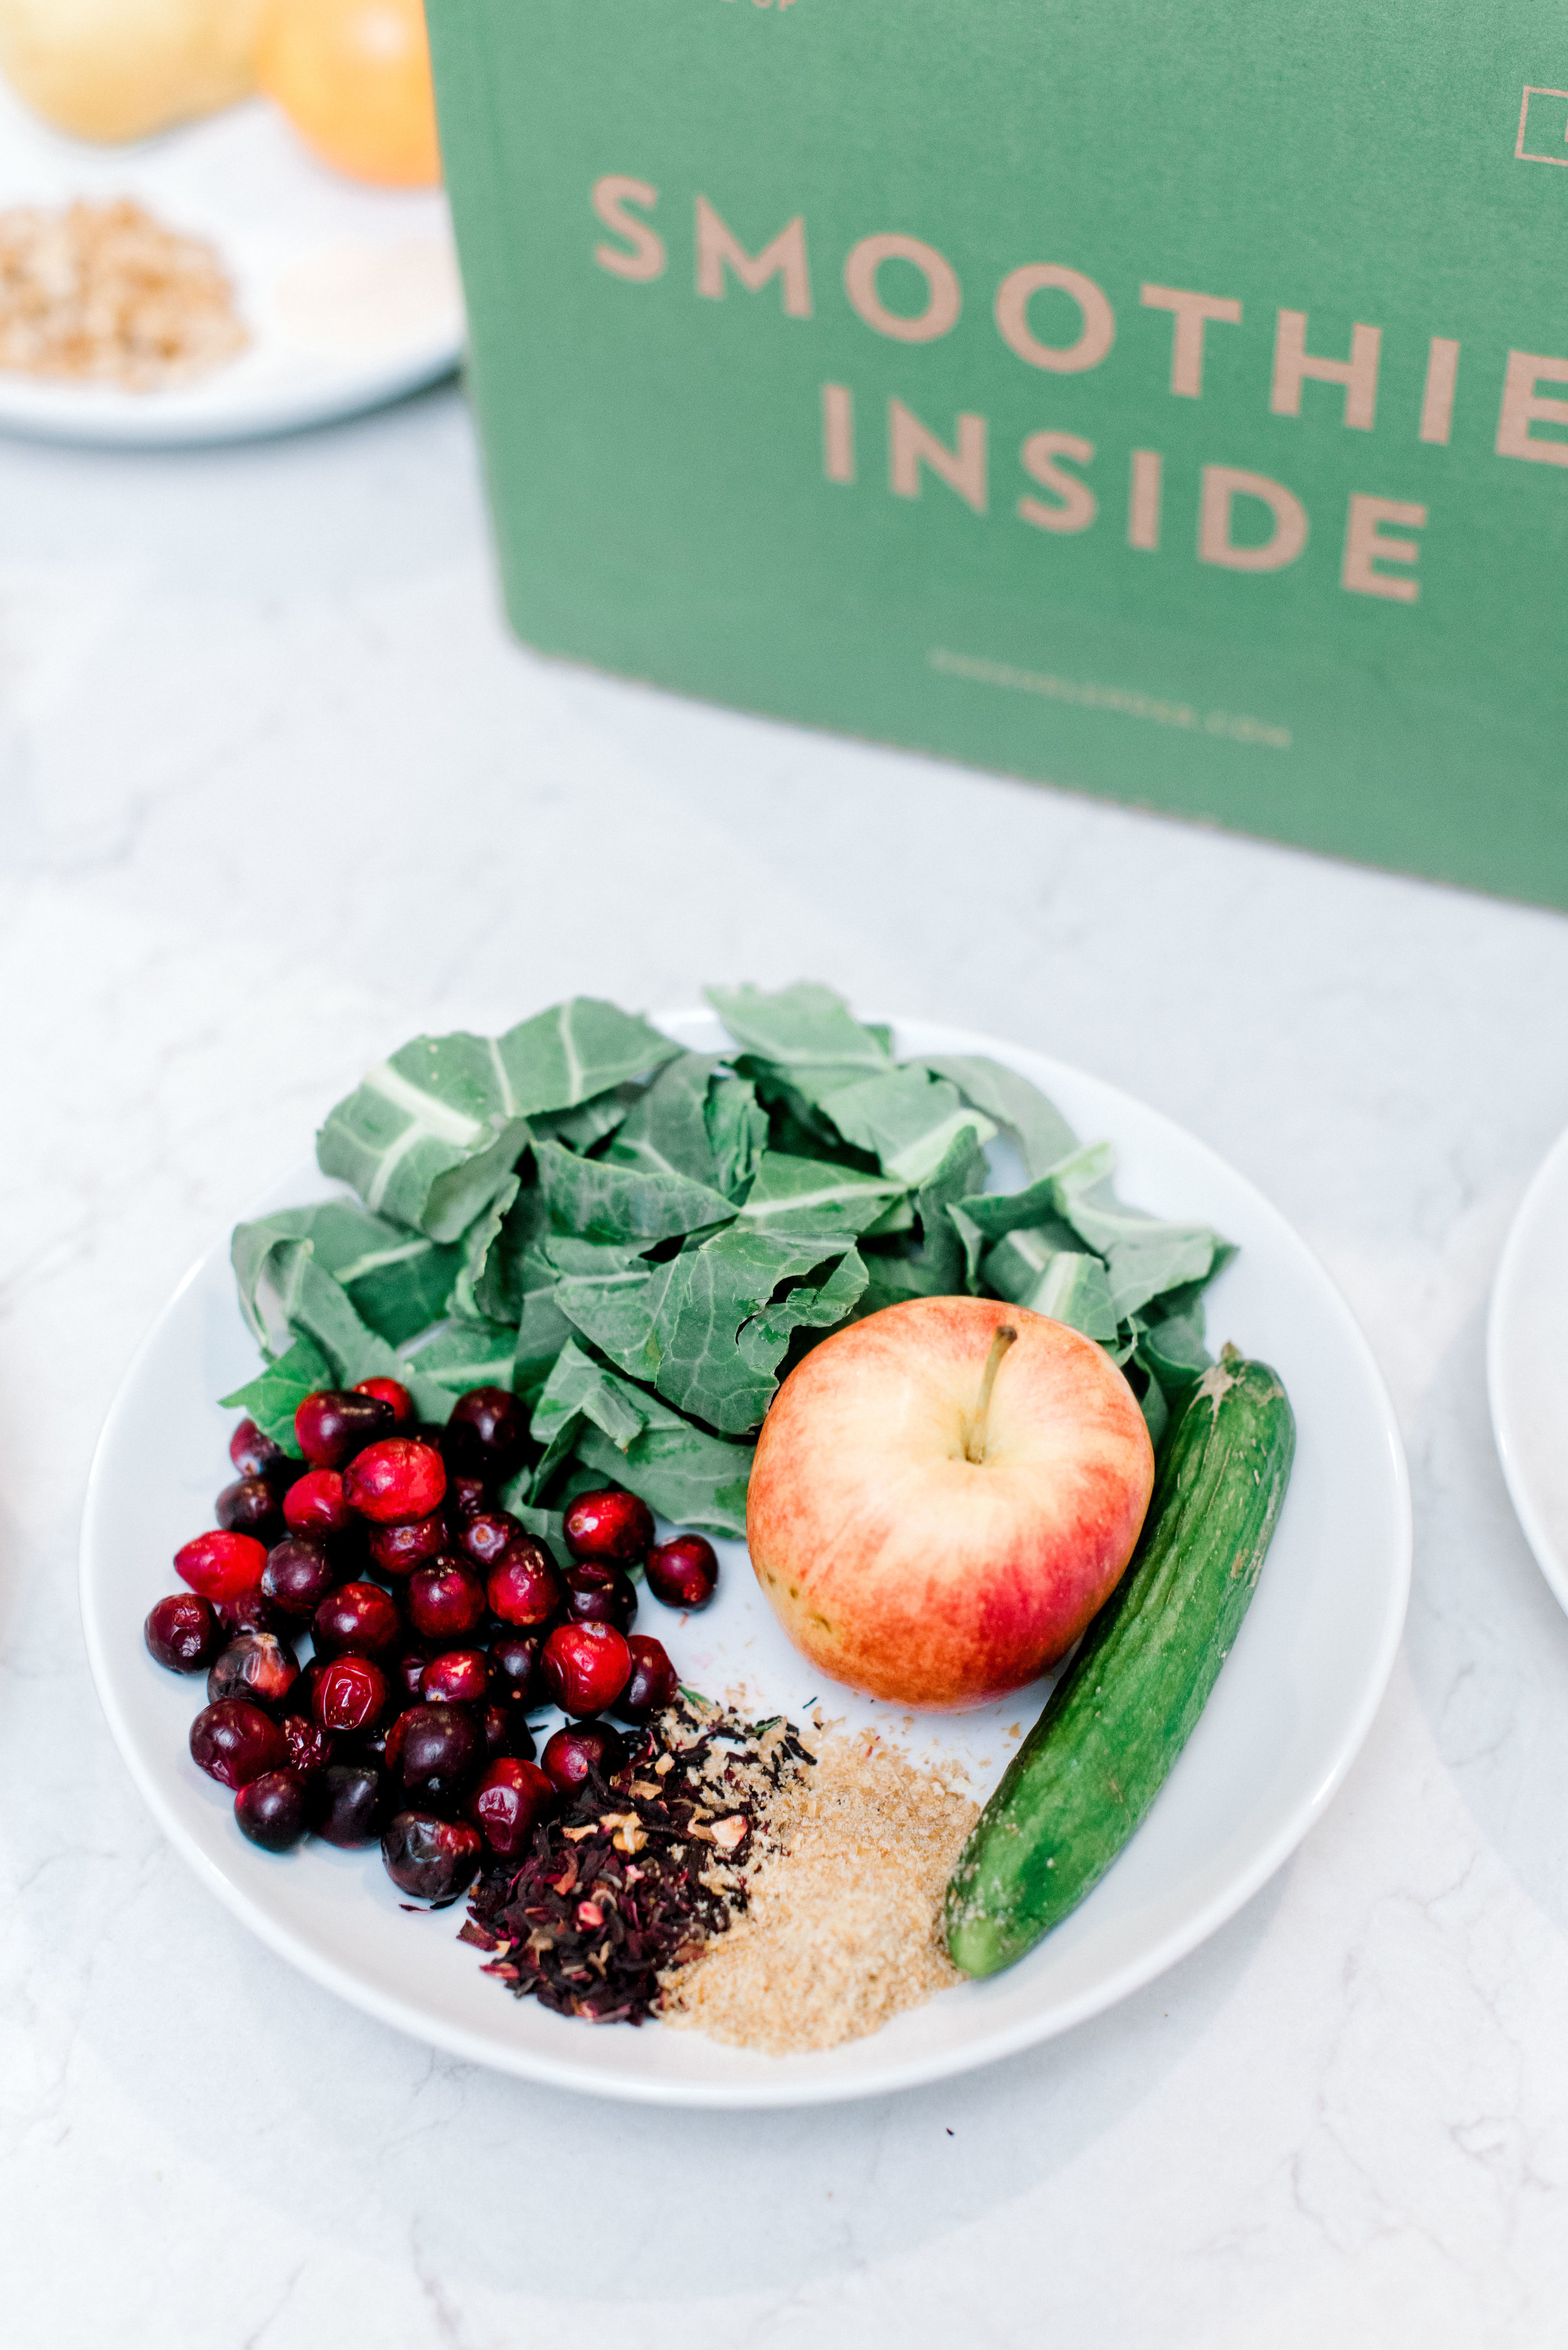 Cucumber Cranberry - 1 1/2 oz organic collard greens1 organic apple, chopped2 oz cranberries1 mini cucumber, chopped1 tbsp dried organic hibiscus1 tbsp organic flax seed1 cup water, 1 cup ice